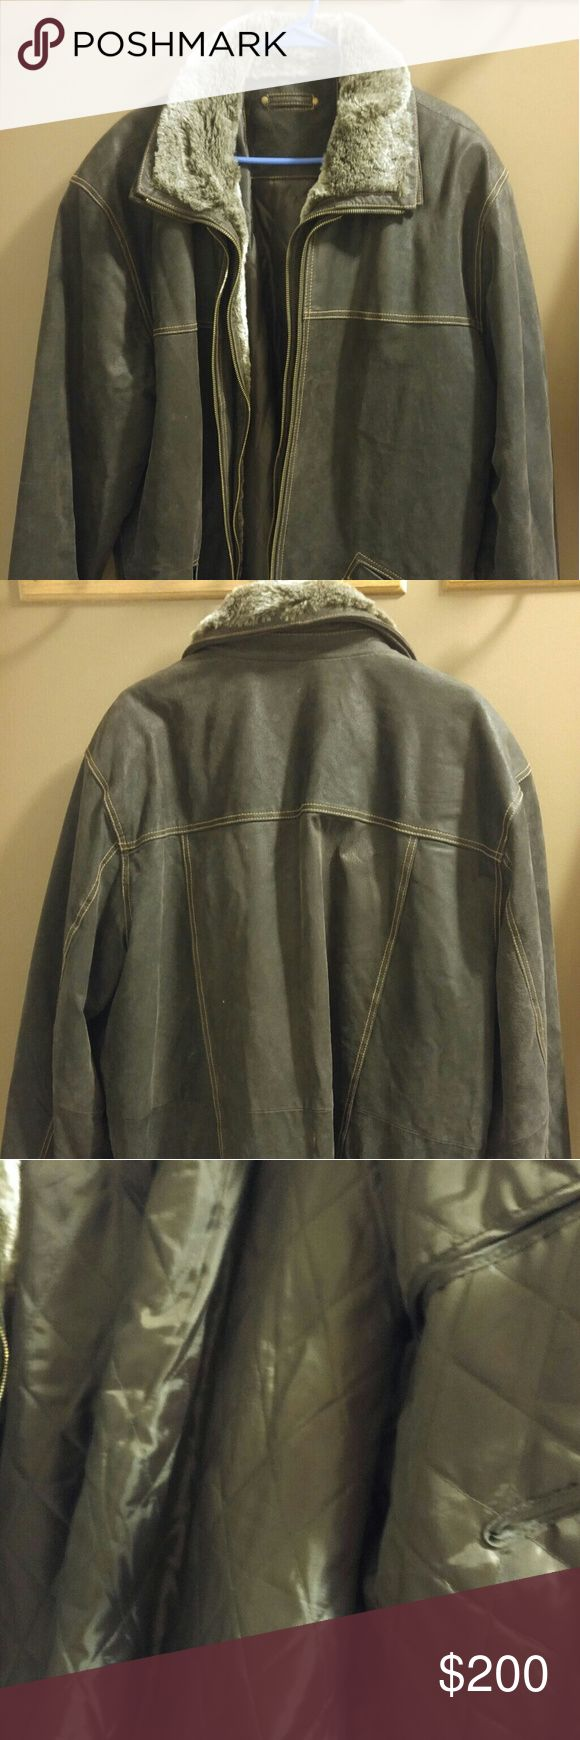 Men's heavey winter coat Gorgeous men's winter coat With removable liner. Zipper in or out Good cond no rips tears or stains that I have seen. Only worn few times been in storage  Open to offers Jackets & Coats